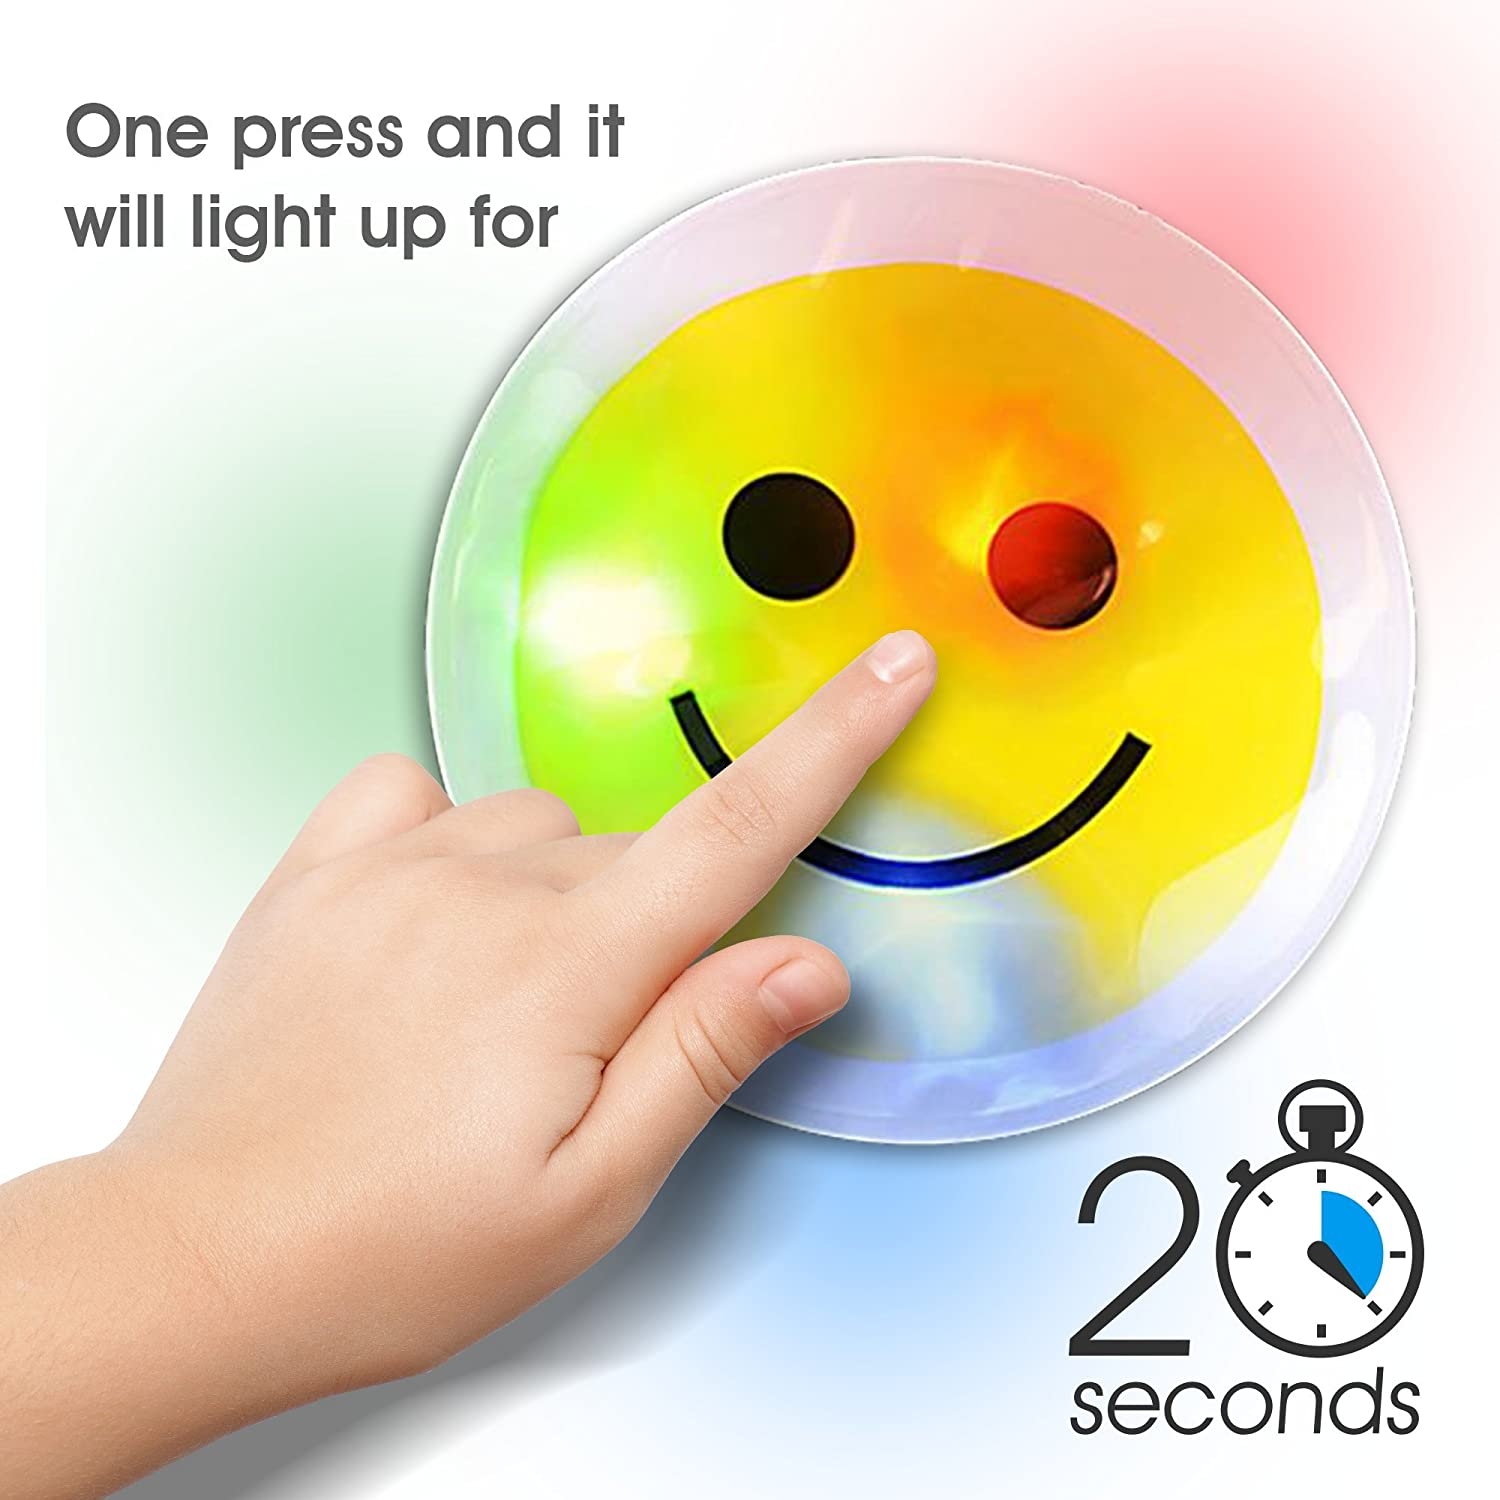 Light Up Smiley Face Sticker W Pre Installed Batteries Electronic Stickers Interactive Games Chinitronics Circuit By Artcreativity 3 Led Happy Emoji For Kids Lighting Decals Closet